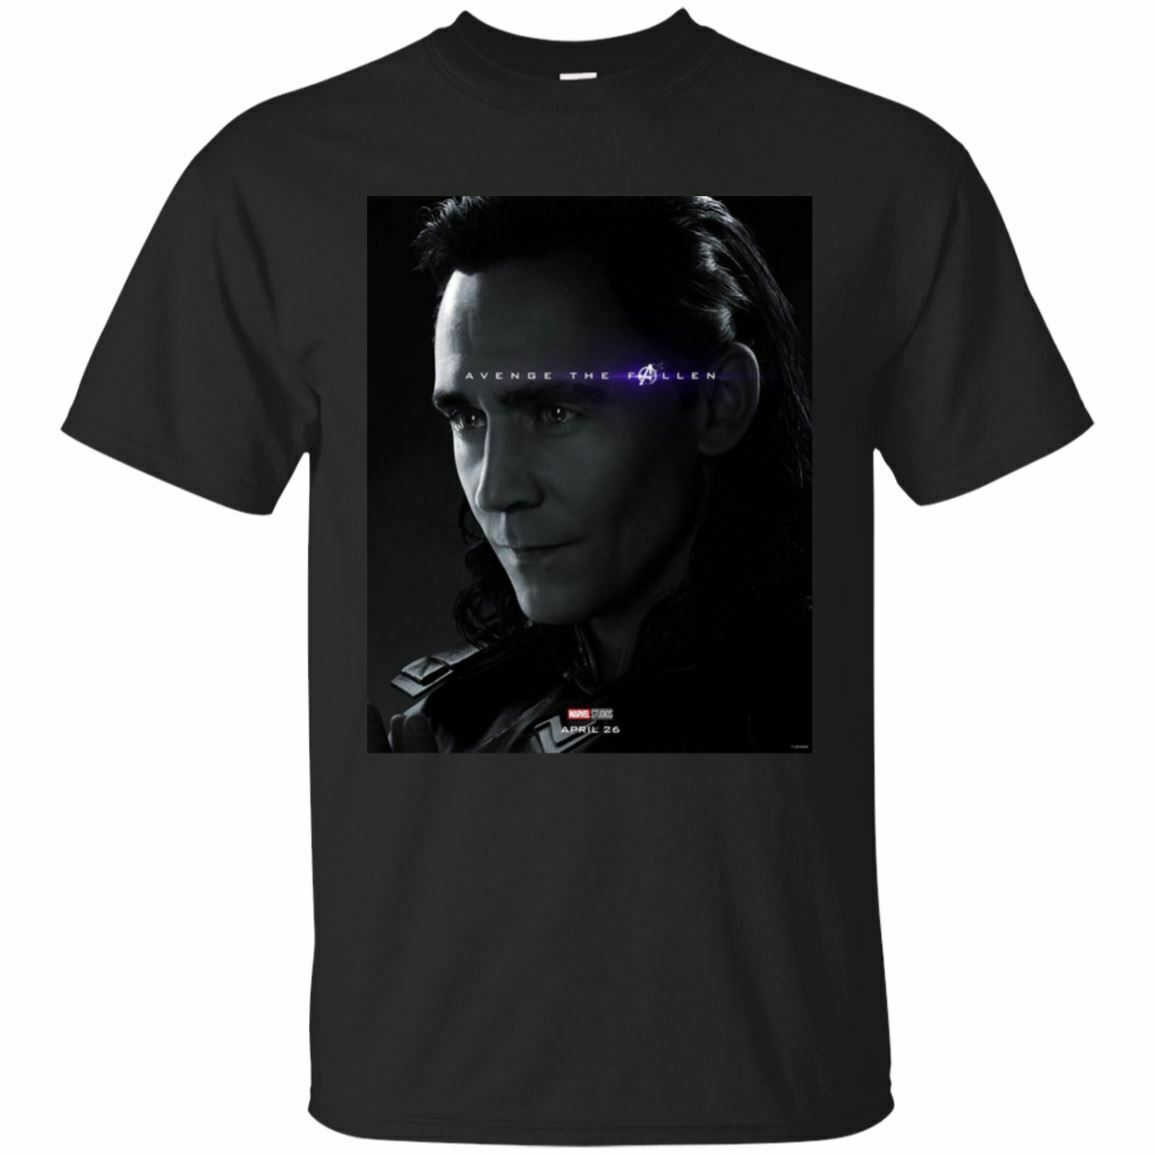 Loki - Avengers End Game Marvel Comic Poster Avenge The Fallen Black T-Shirt T Shirts Casual Brand Clothing Cotton Top Tee